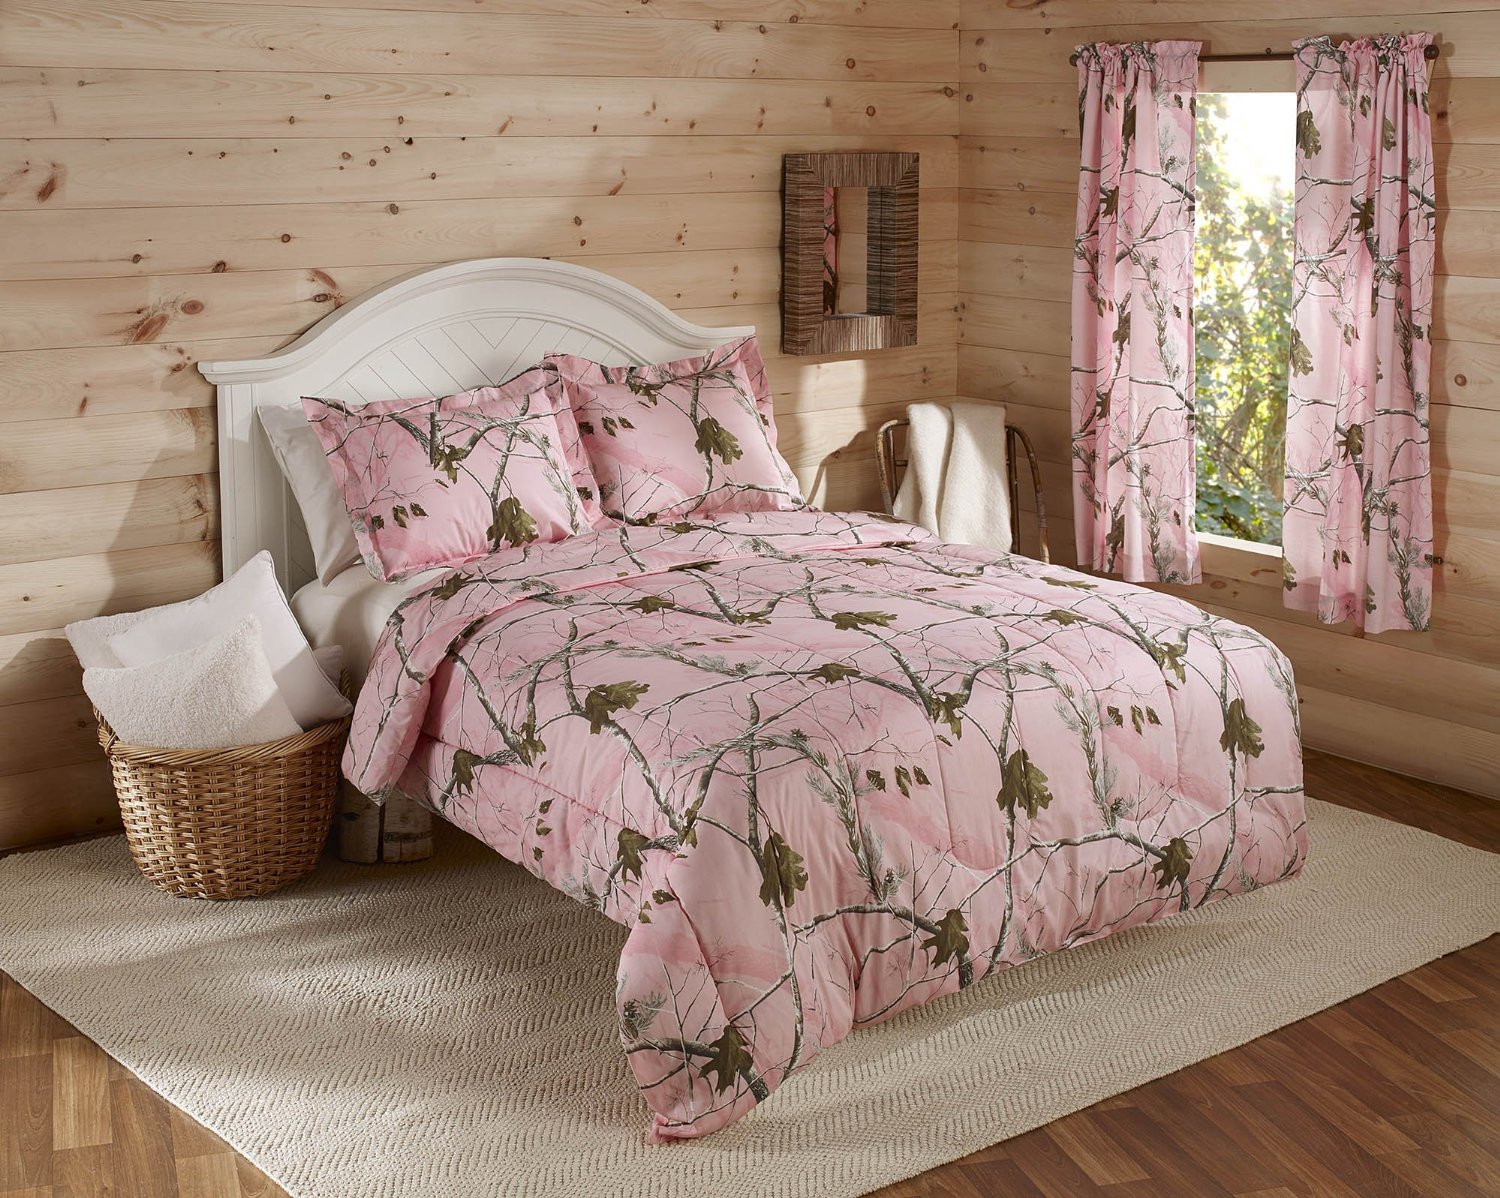 Camo Bedding With Hot Pink - Uber cheap pink camo bedding mini camo comforter set